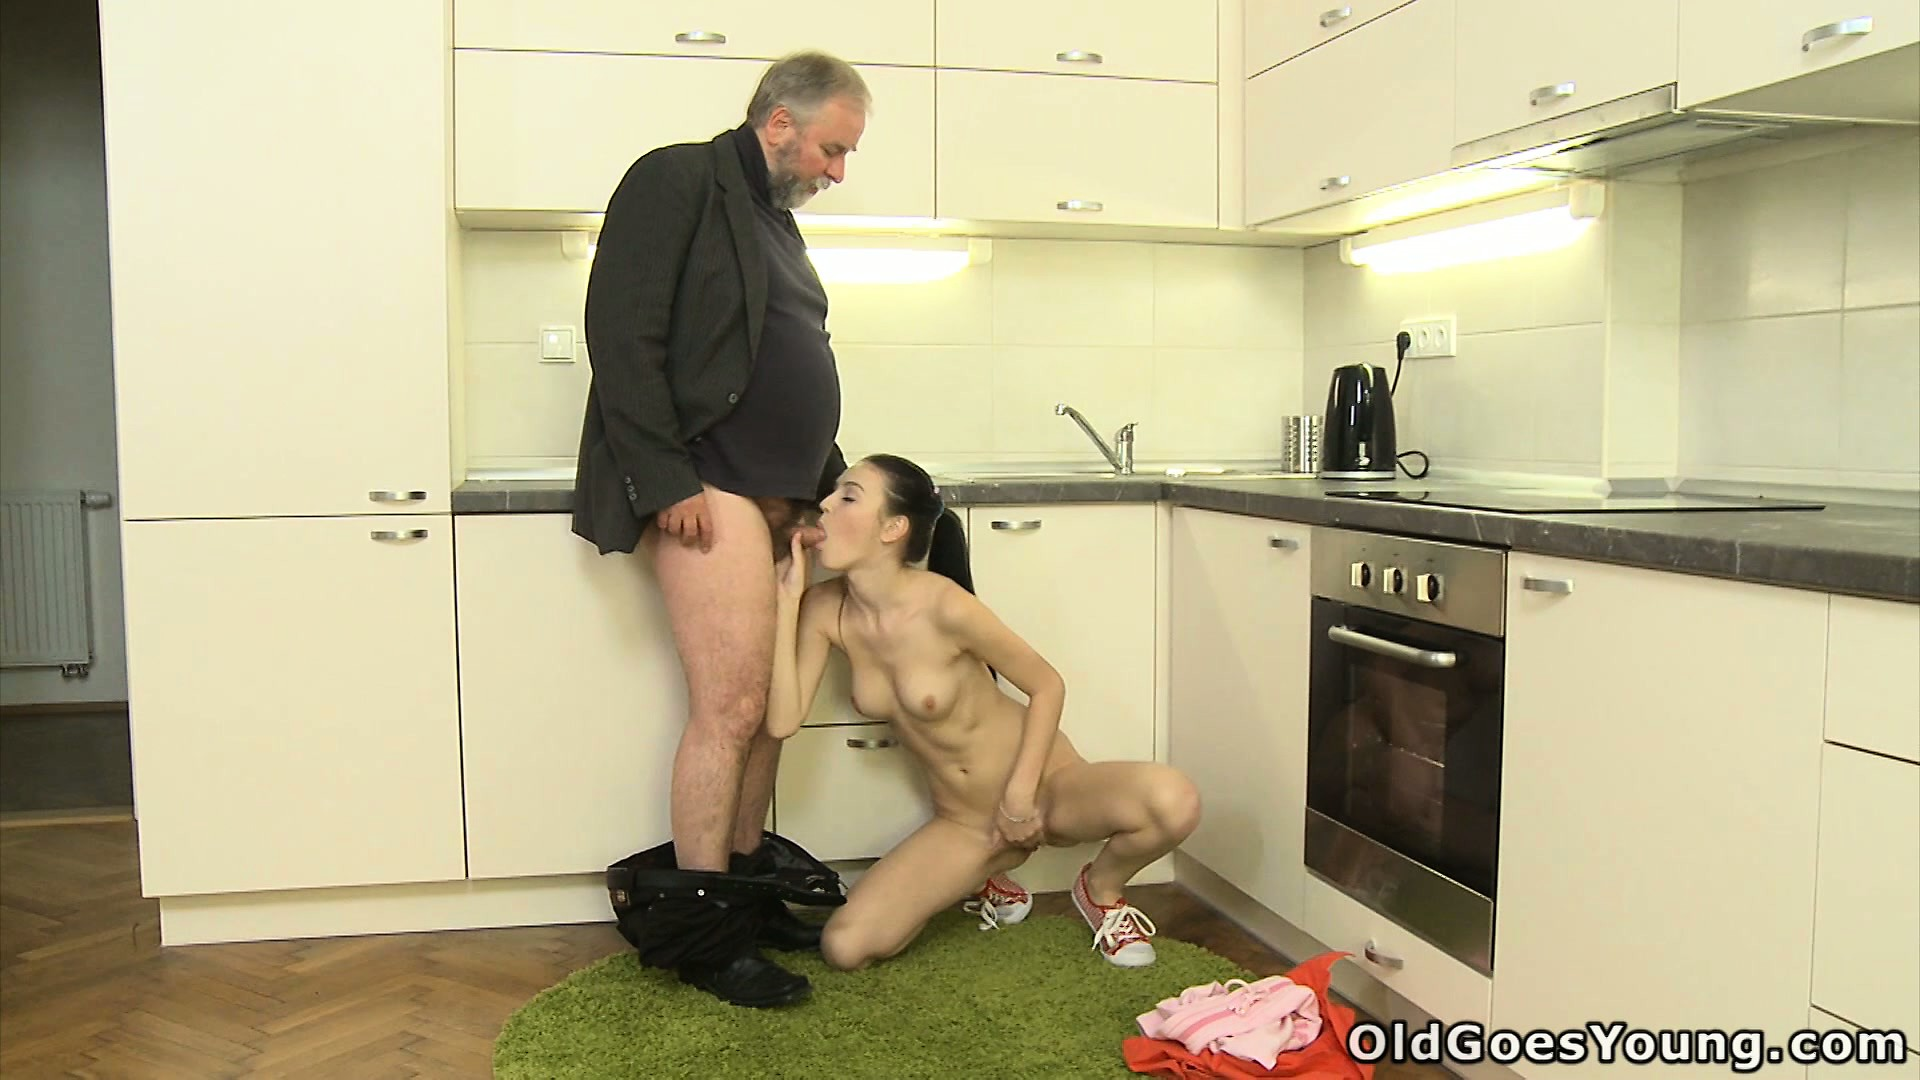 Porno Video of Katia Lets The Old Guy Suck Her Bald Wet Pussy In The Kitchen